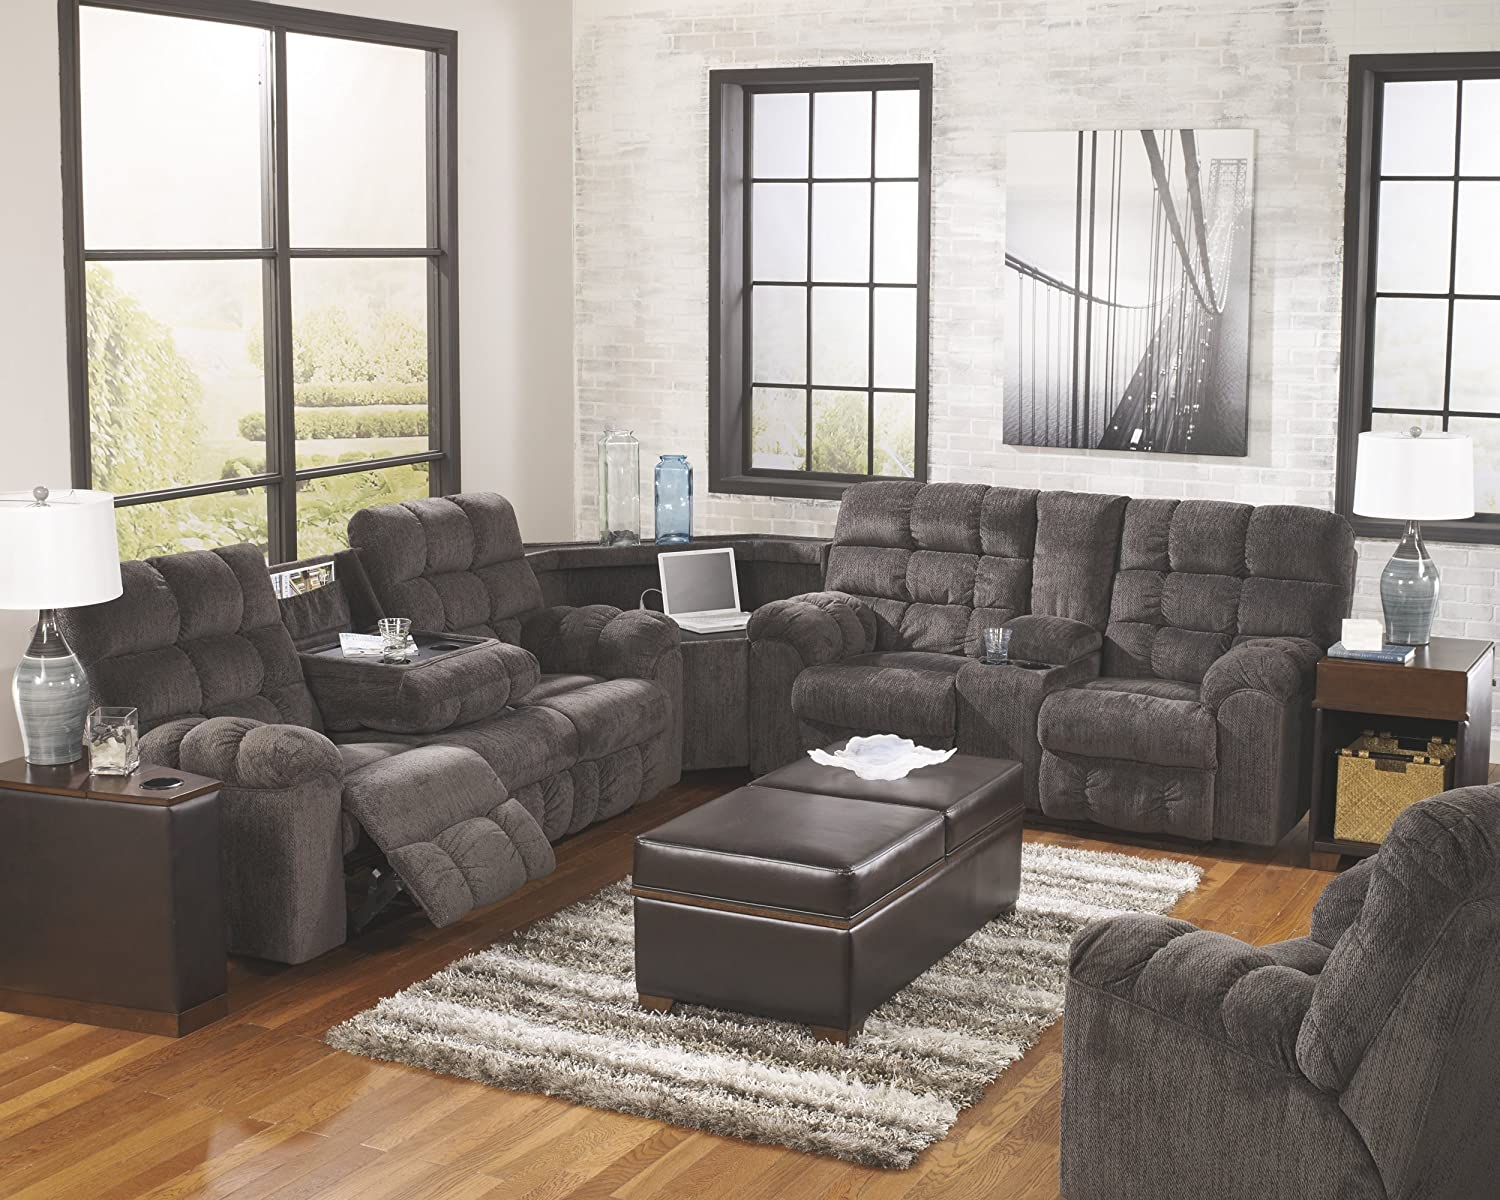 Ashley Furniture Signature Design – Acieona 3-Piece Sectional – Reclining Sofa with Drop-down Table with Wedge Double Reclining Loveseat with Console – Slate